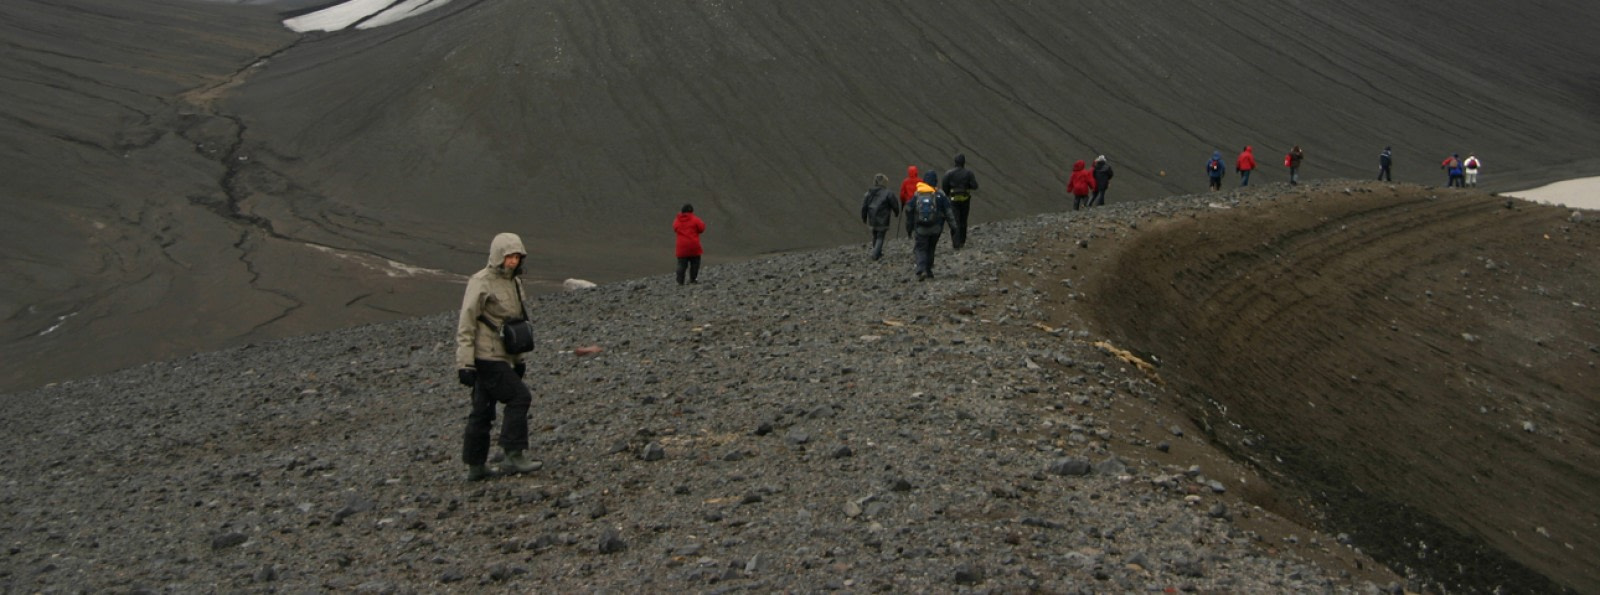 Hiking Deception Island